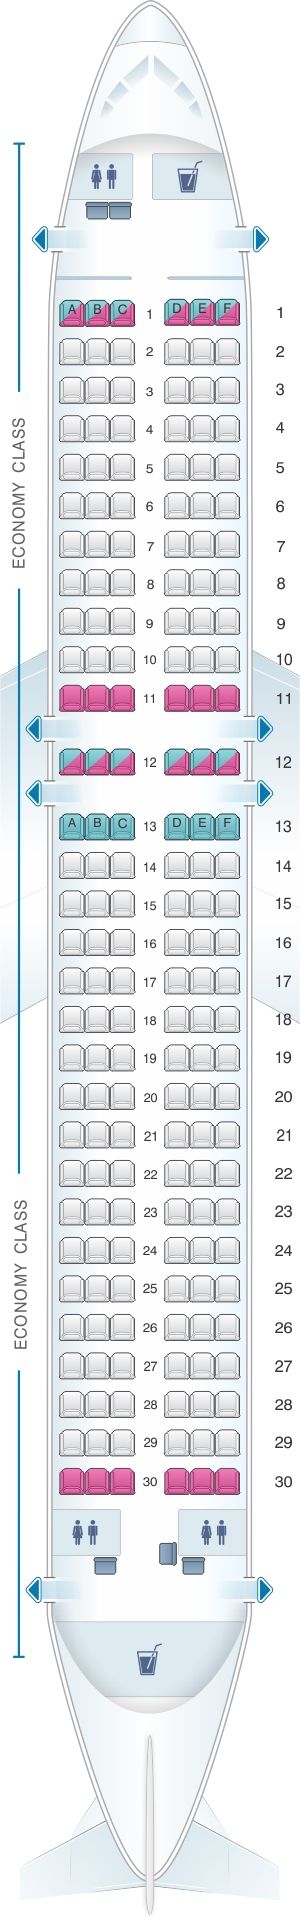 Seat map for Monarch Airlines Airbus A320 200